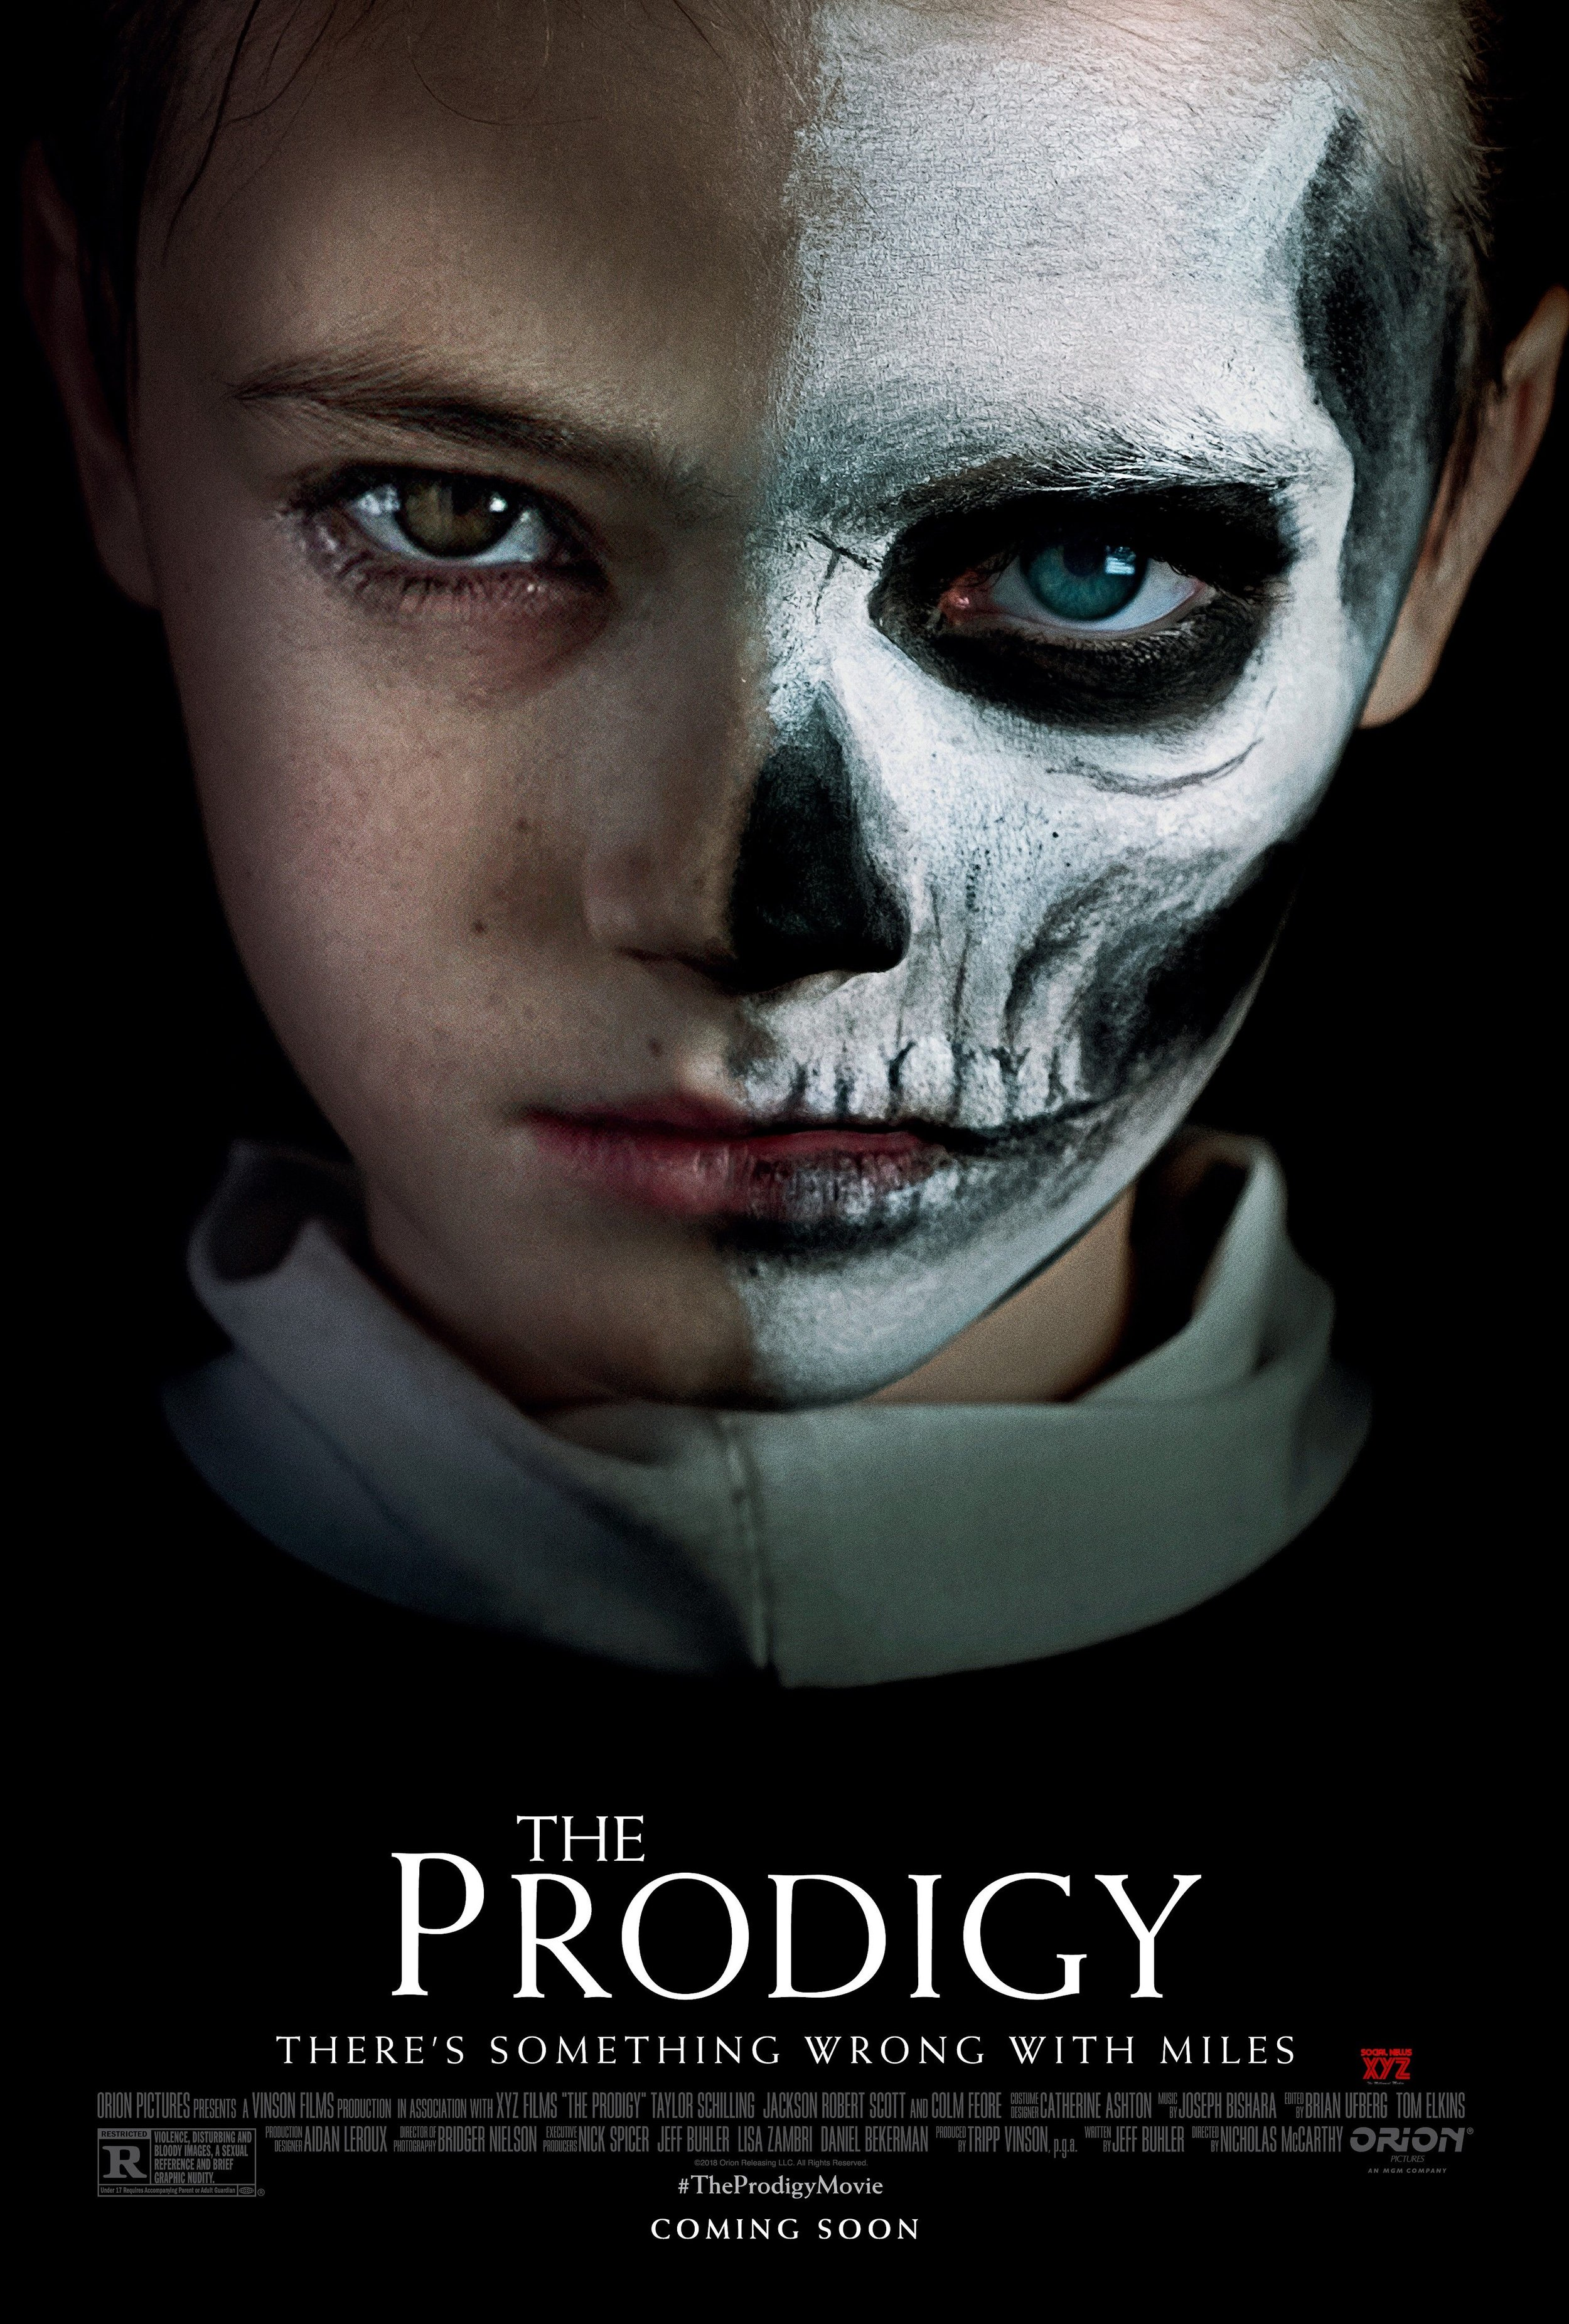 the-prodigy-Movie-HD-Poster-.jpg